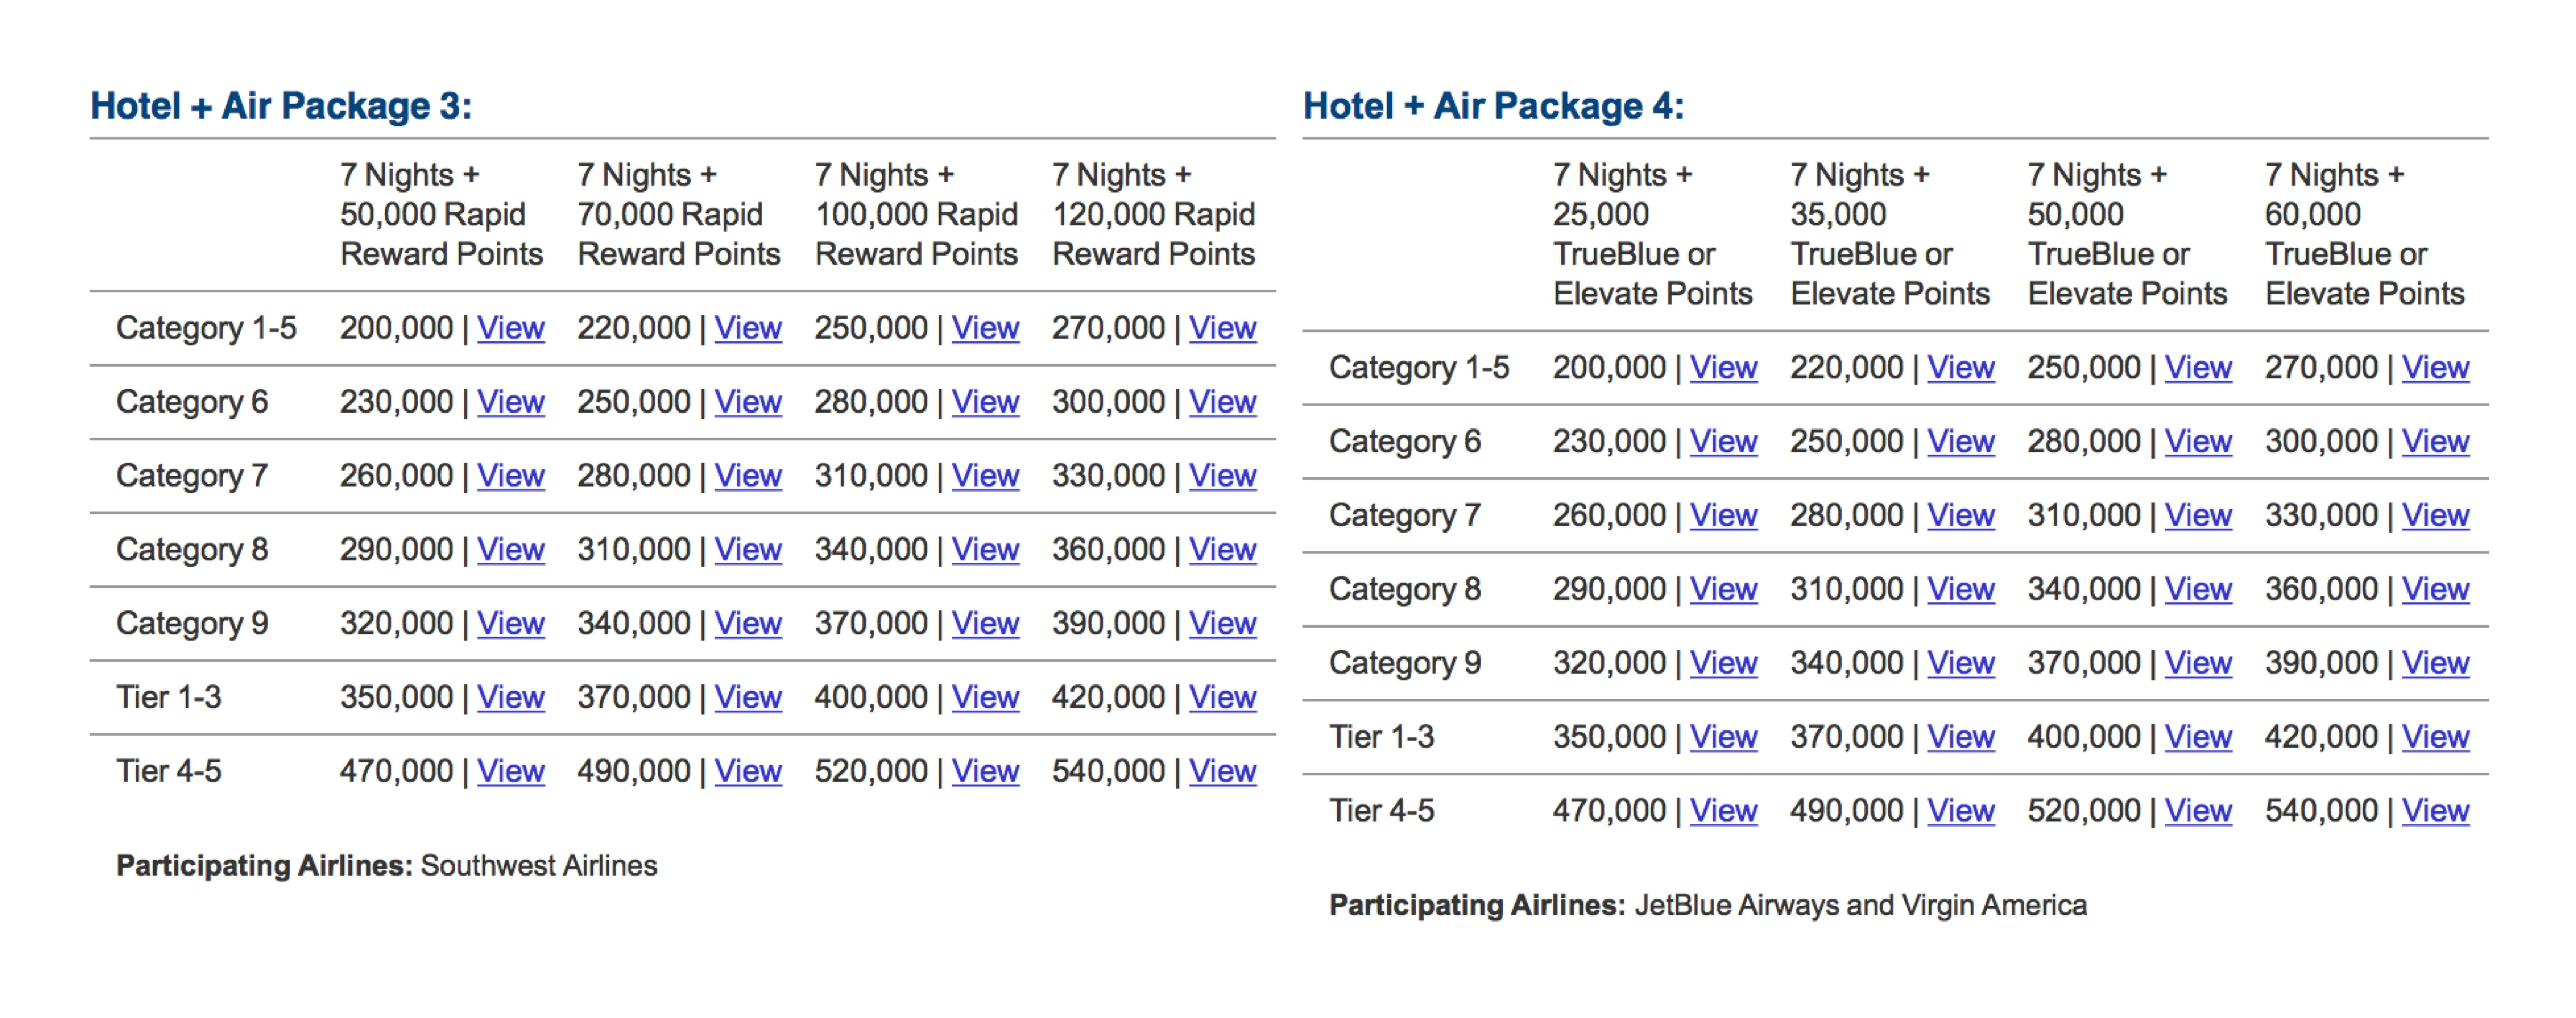 A complete guide to the marriott travel packages the best way to the above five tables screenshots from marriott tell what marriott travel packages are the points shown in the table are how much we need to redeem xflitez Choice Image